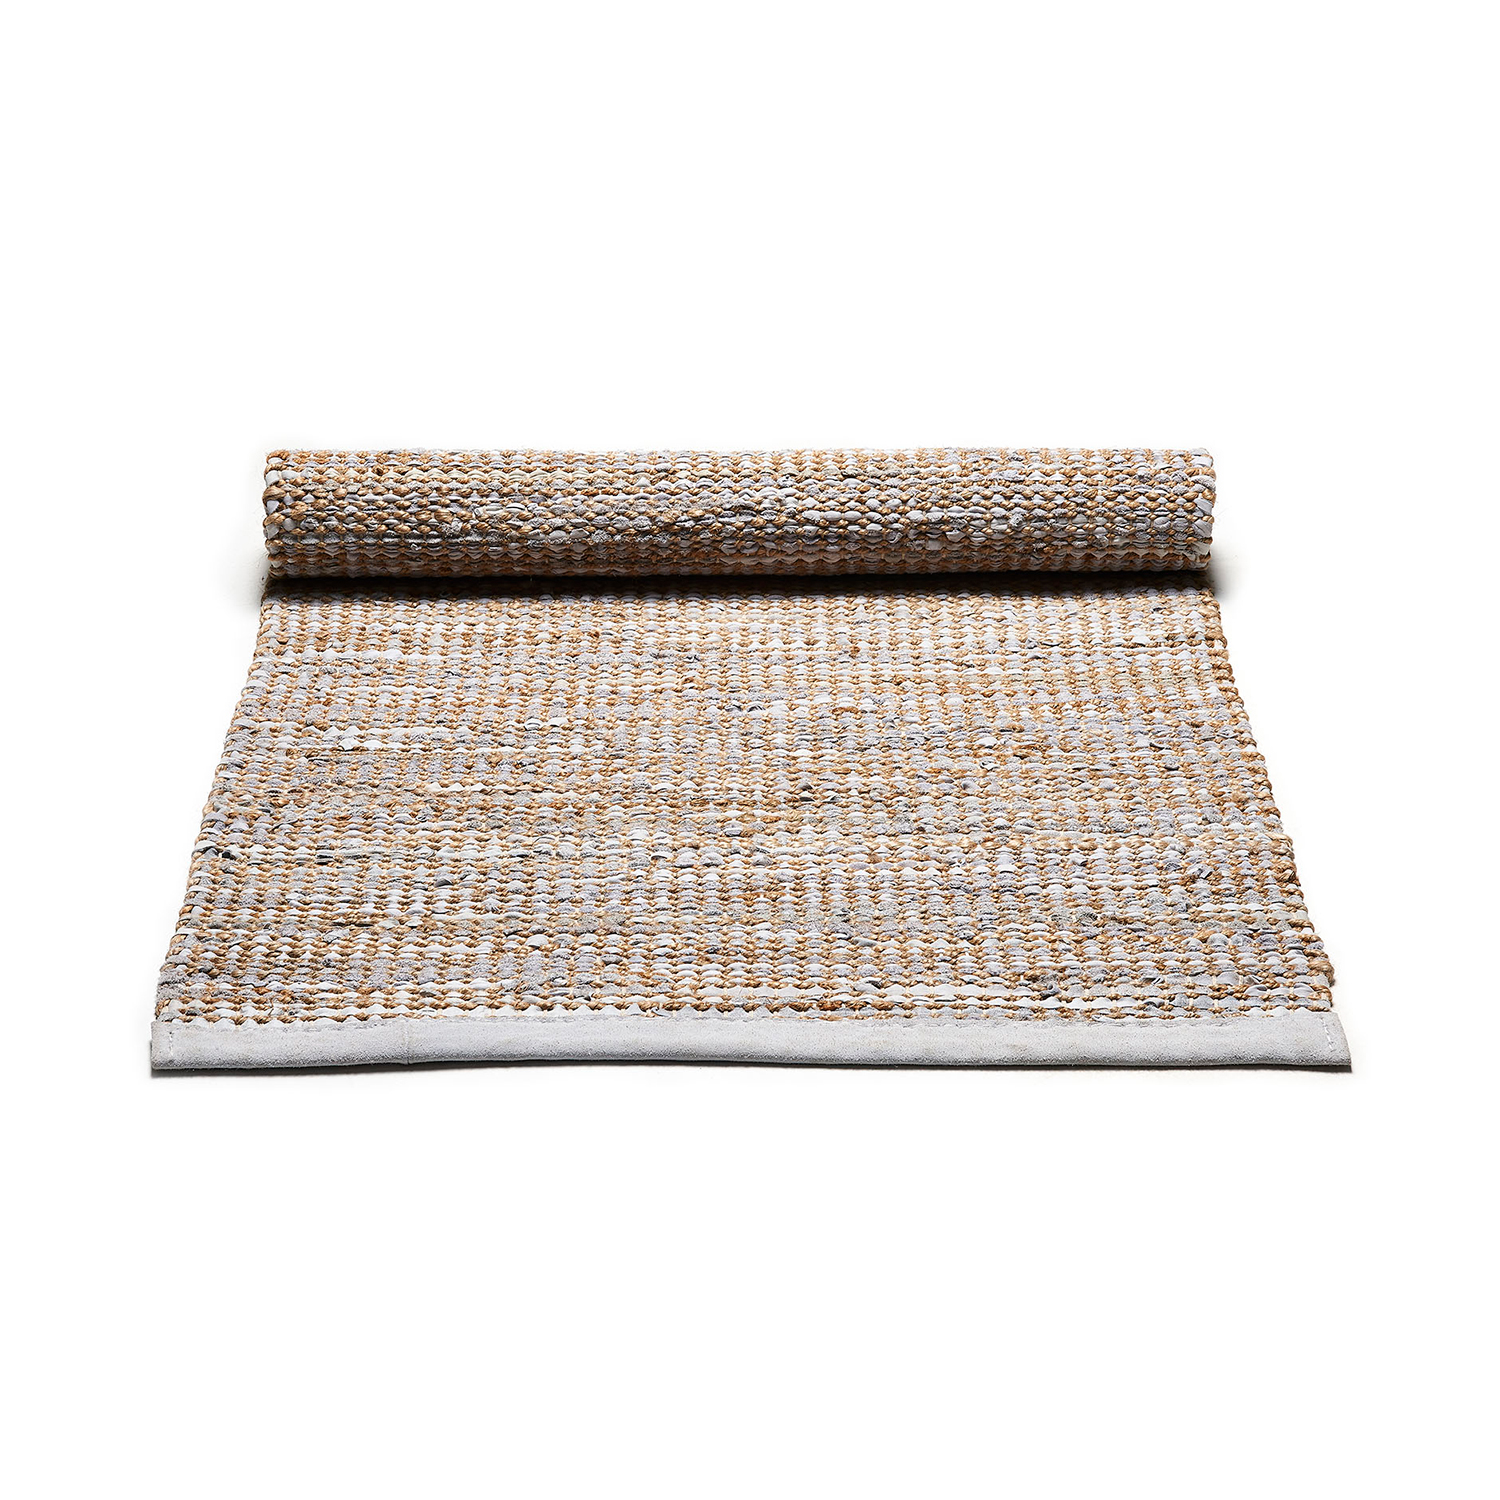 Jute/Leather matta 65x135, smooth grey